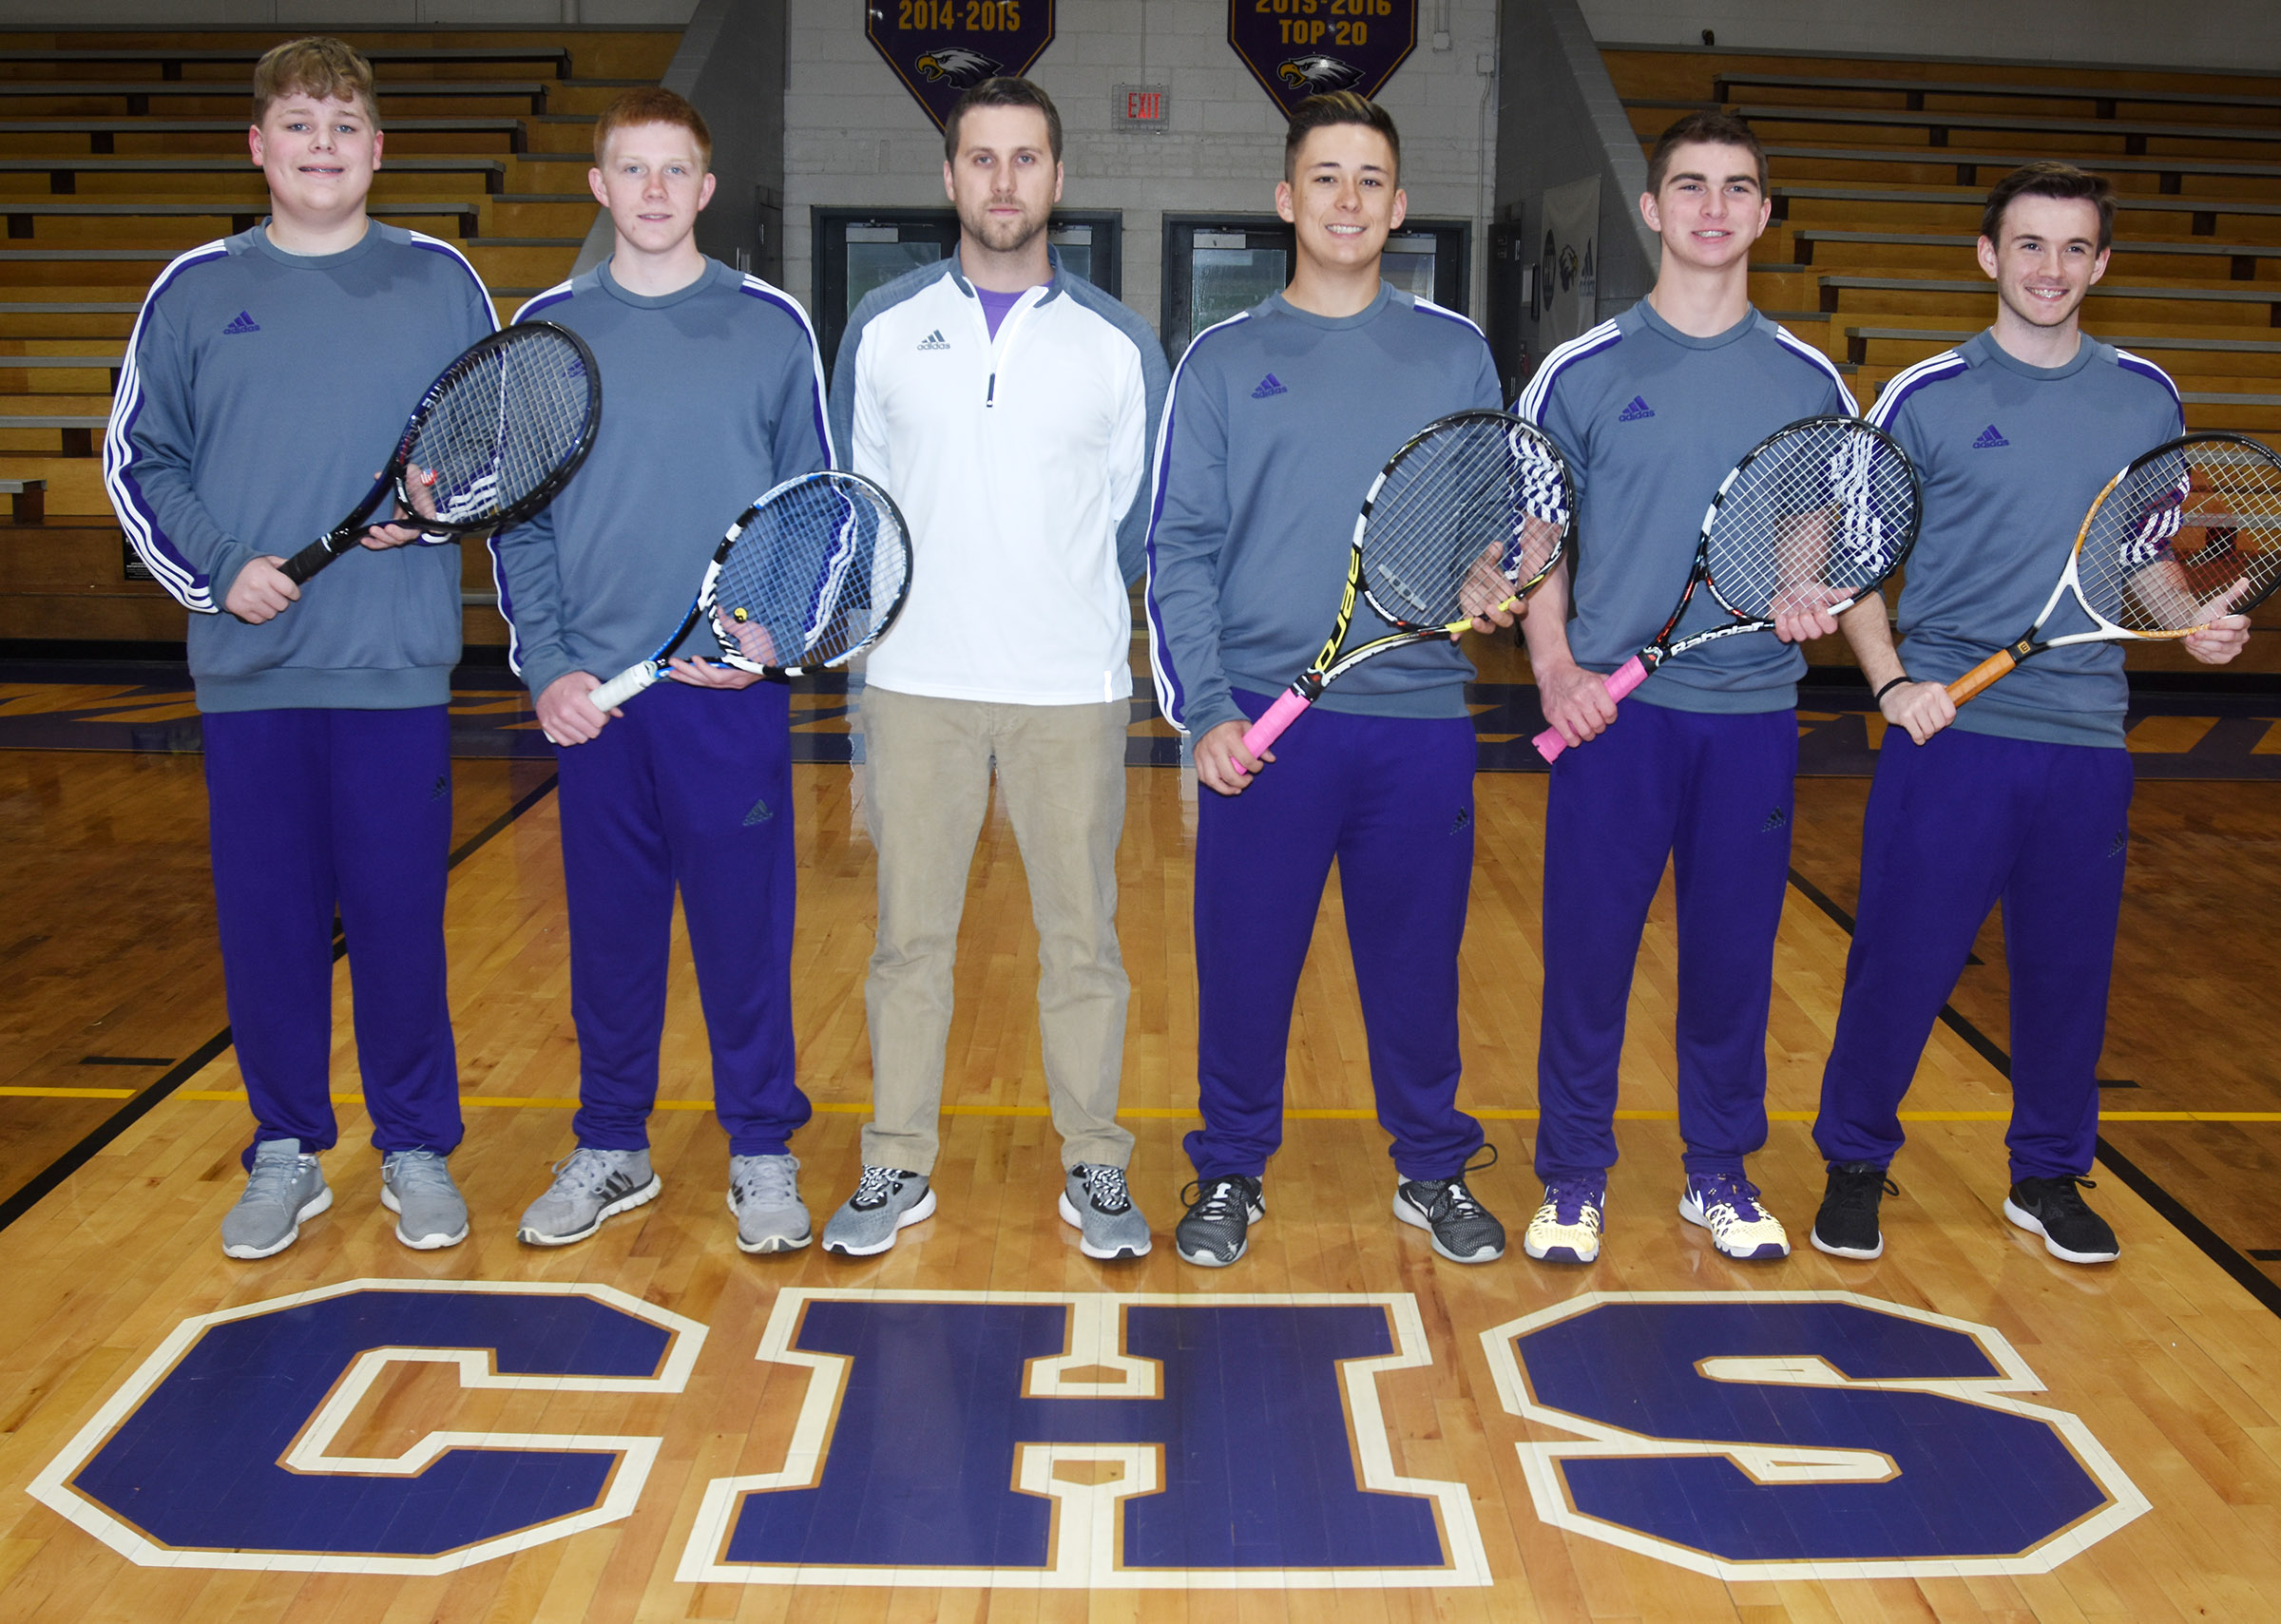 CHS boys' tennis team includes, from left, eighth-grader Blake Settle, sophomore Patrick Walker, coach Tyler Hardy and seniors Cody Davis, Cass Kidwell and Jackson Hunt.